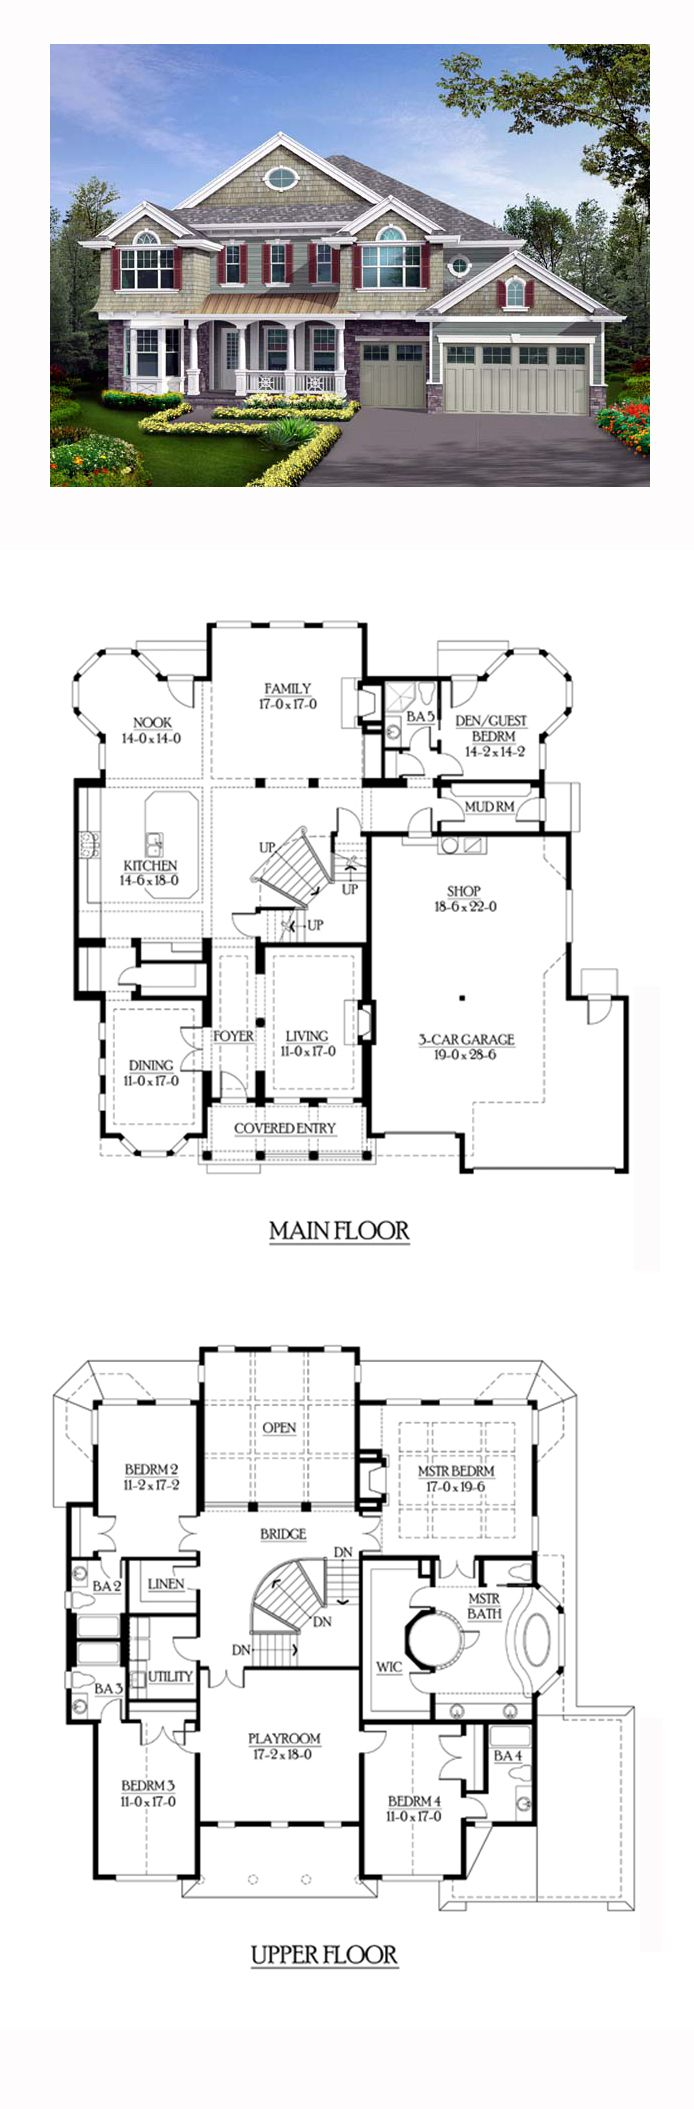 best 25 family house plans ideas on pinterest sims 3 houses best 25 family house plans ideas on pinterest sims 3 houses plans sims 4 houses layout and the blueprint 3